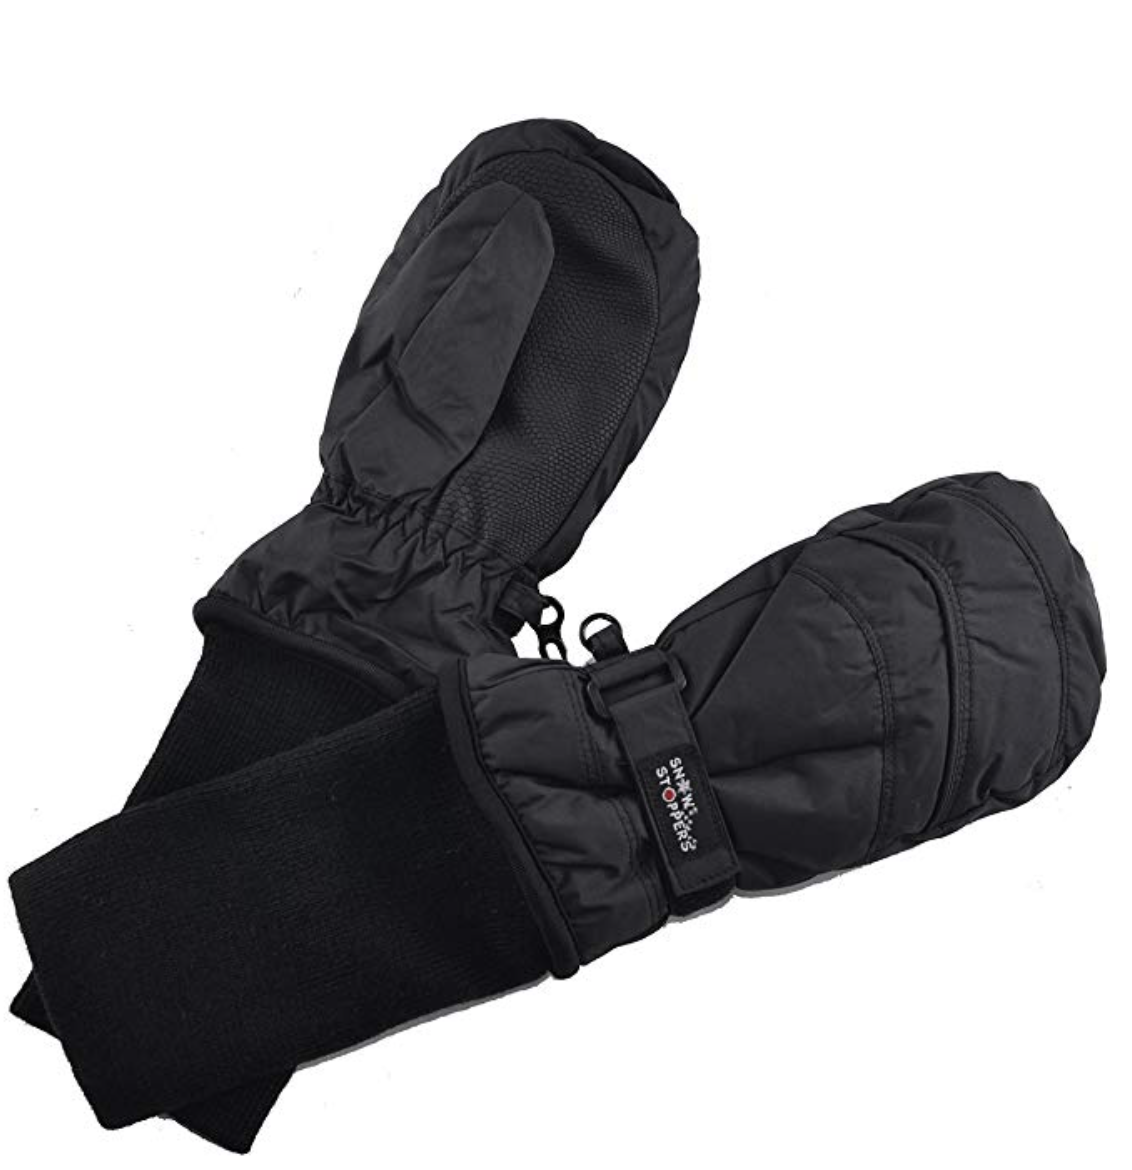 SnowStoppers Waterproof Stay-On Youth Ski Mittens